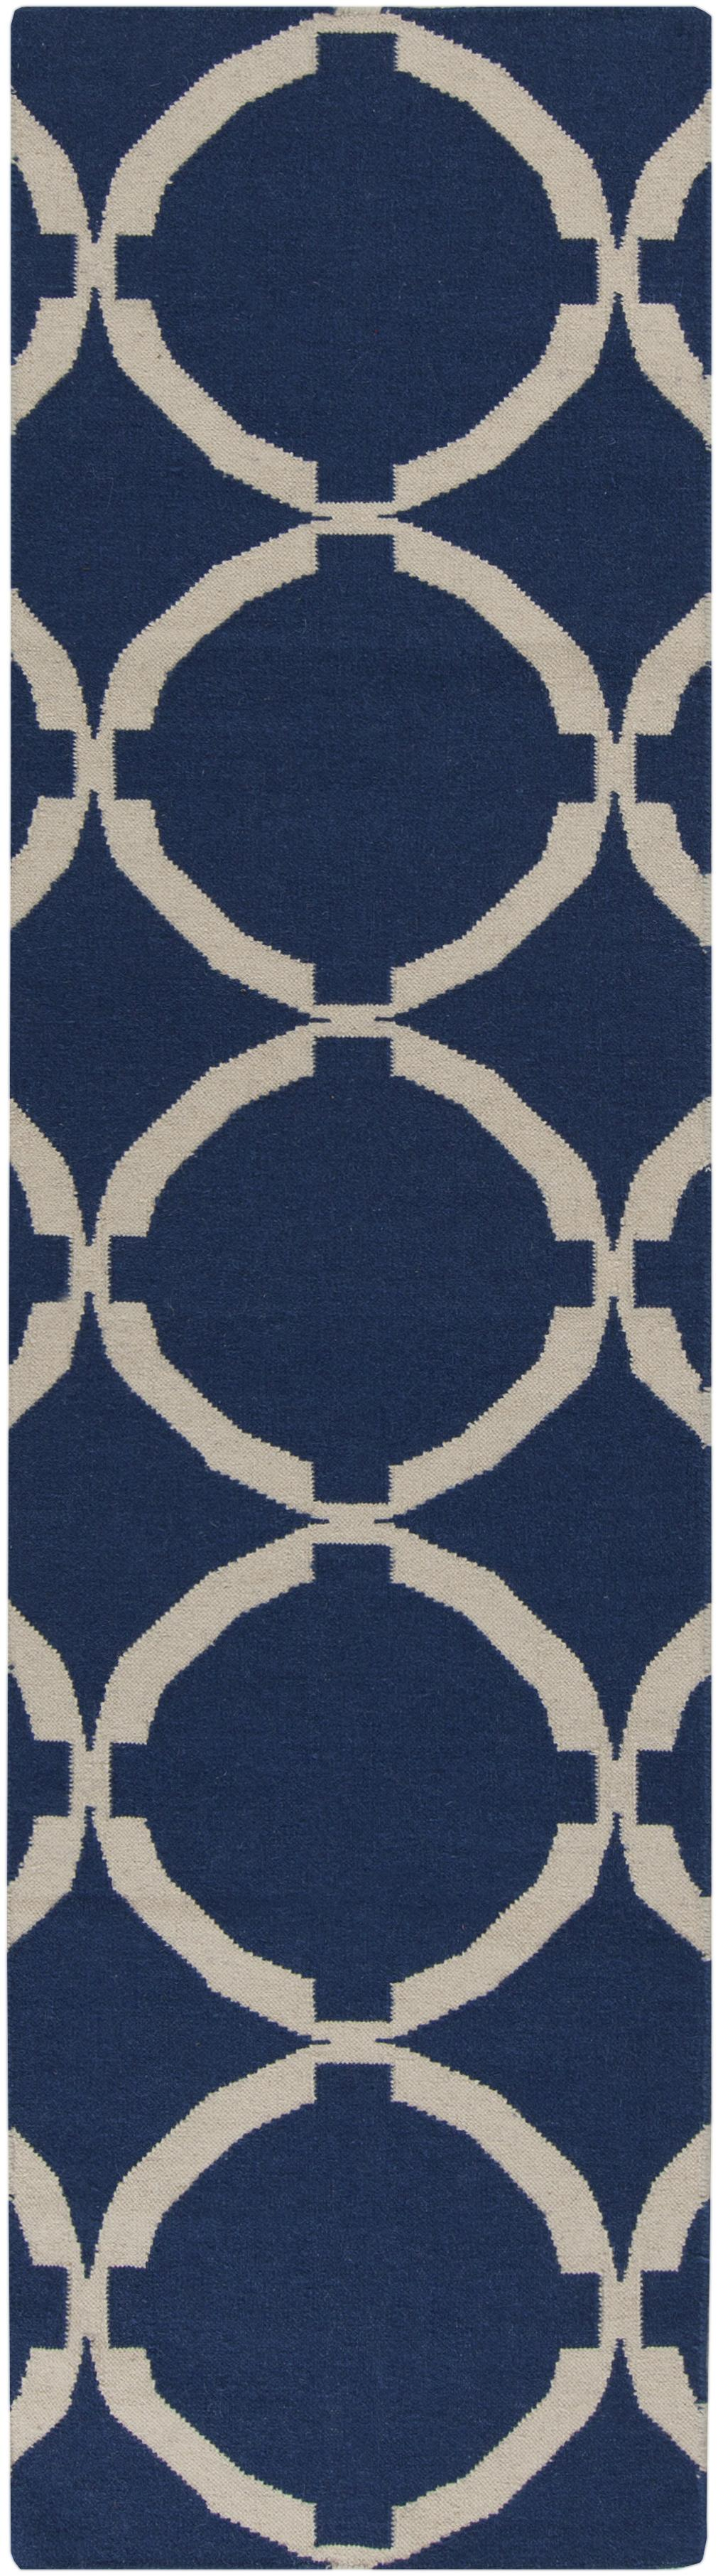 "Surya Rugs Frontier 2'6"" x 8' - Item Number: FT521-268"